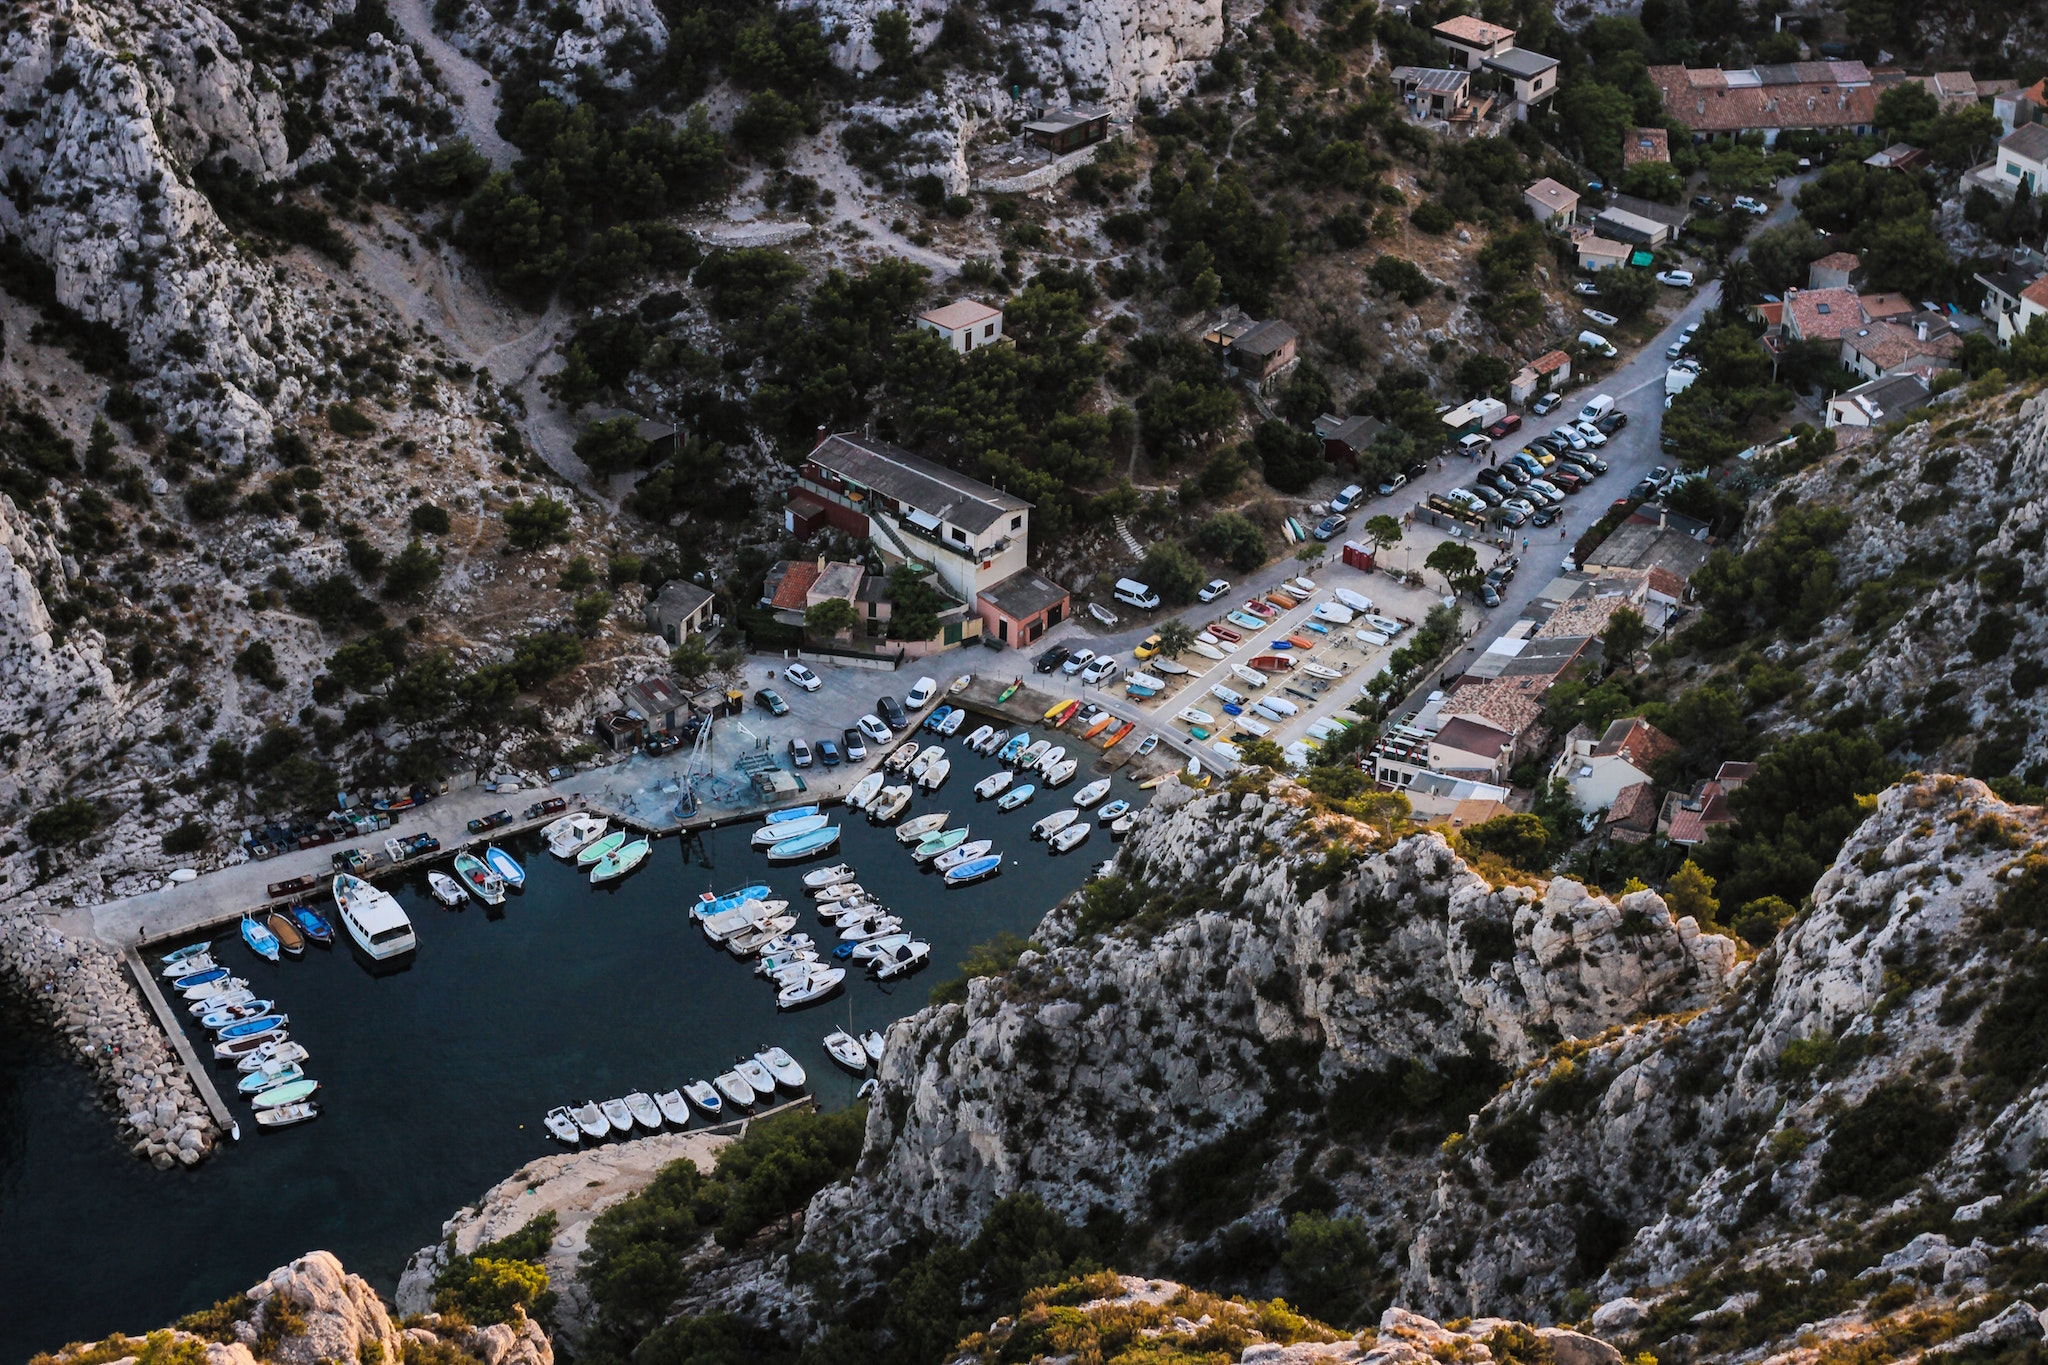 A rocky bay near in the South of France, crowded with small boats and dozens of parked cars next to it.